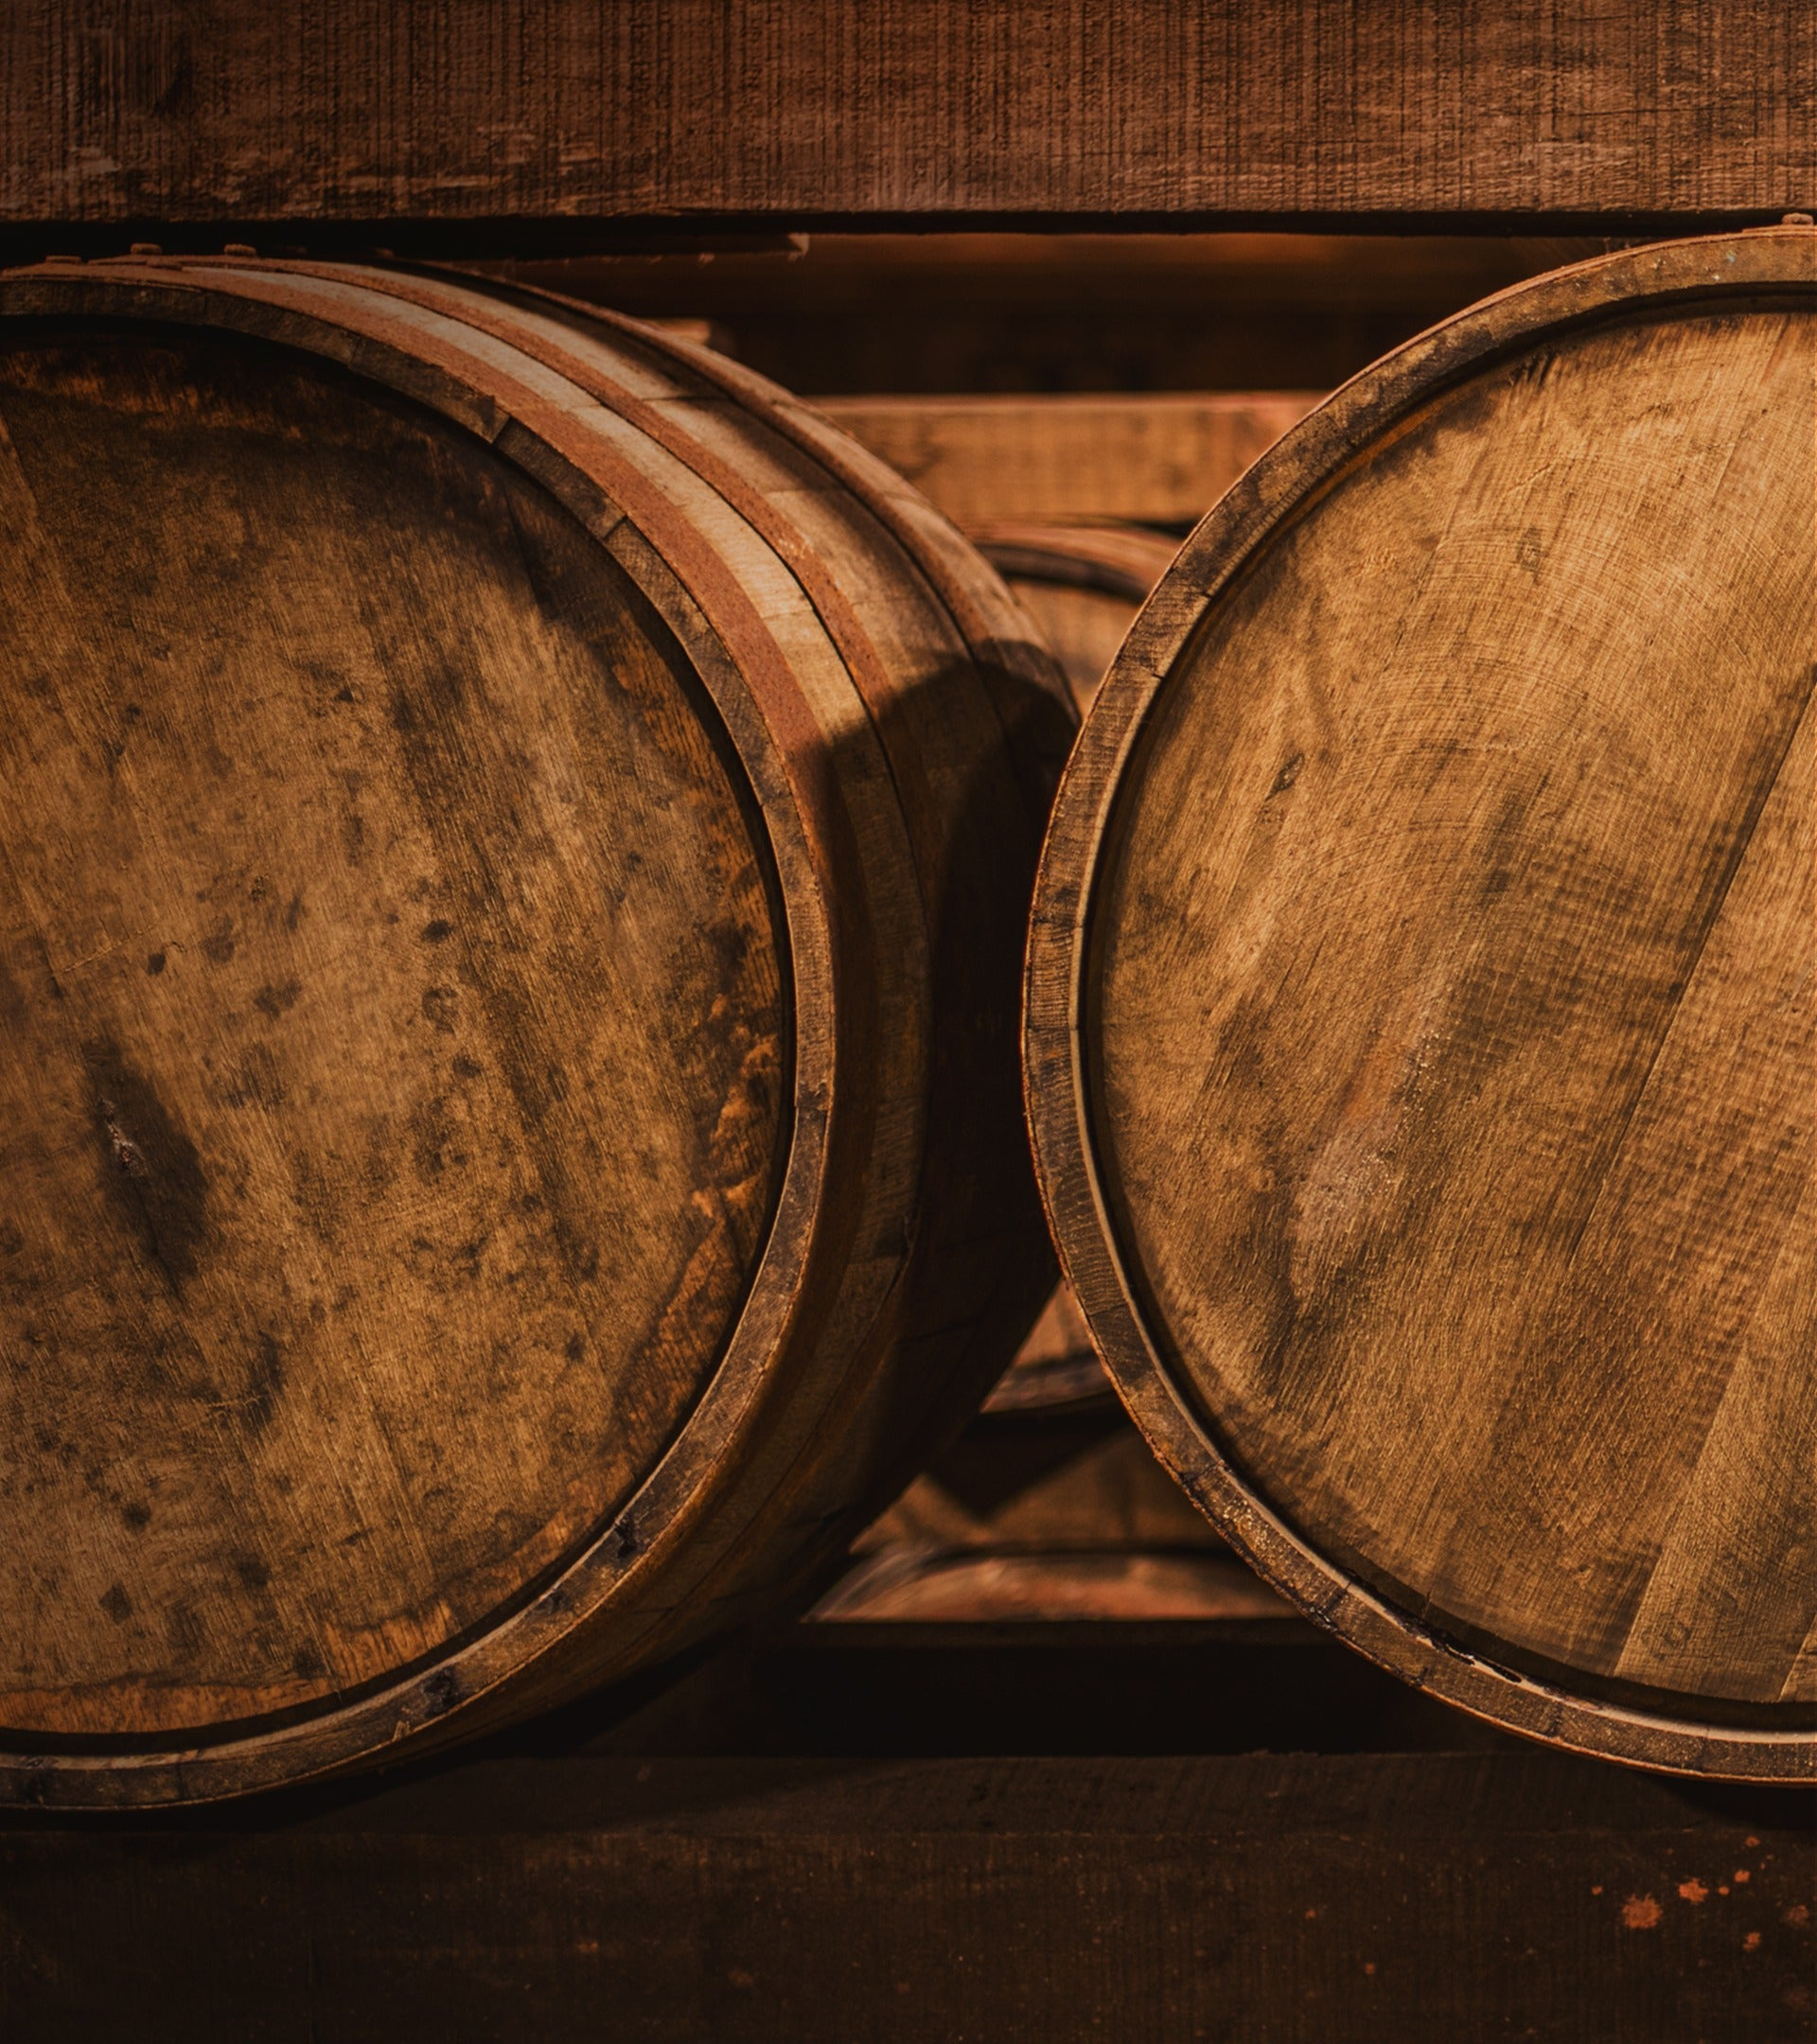 passport scotch background with american barrels end on